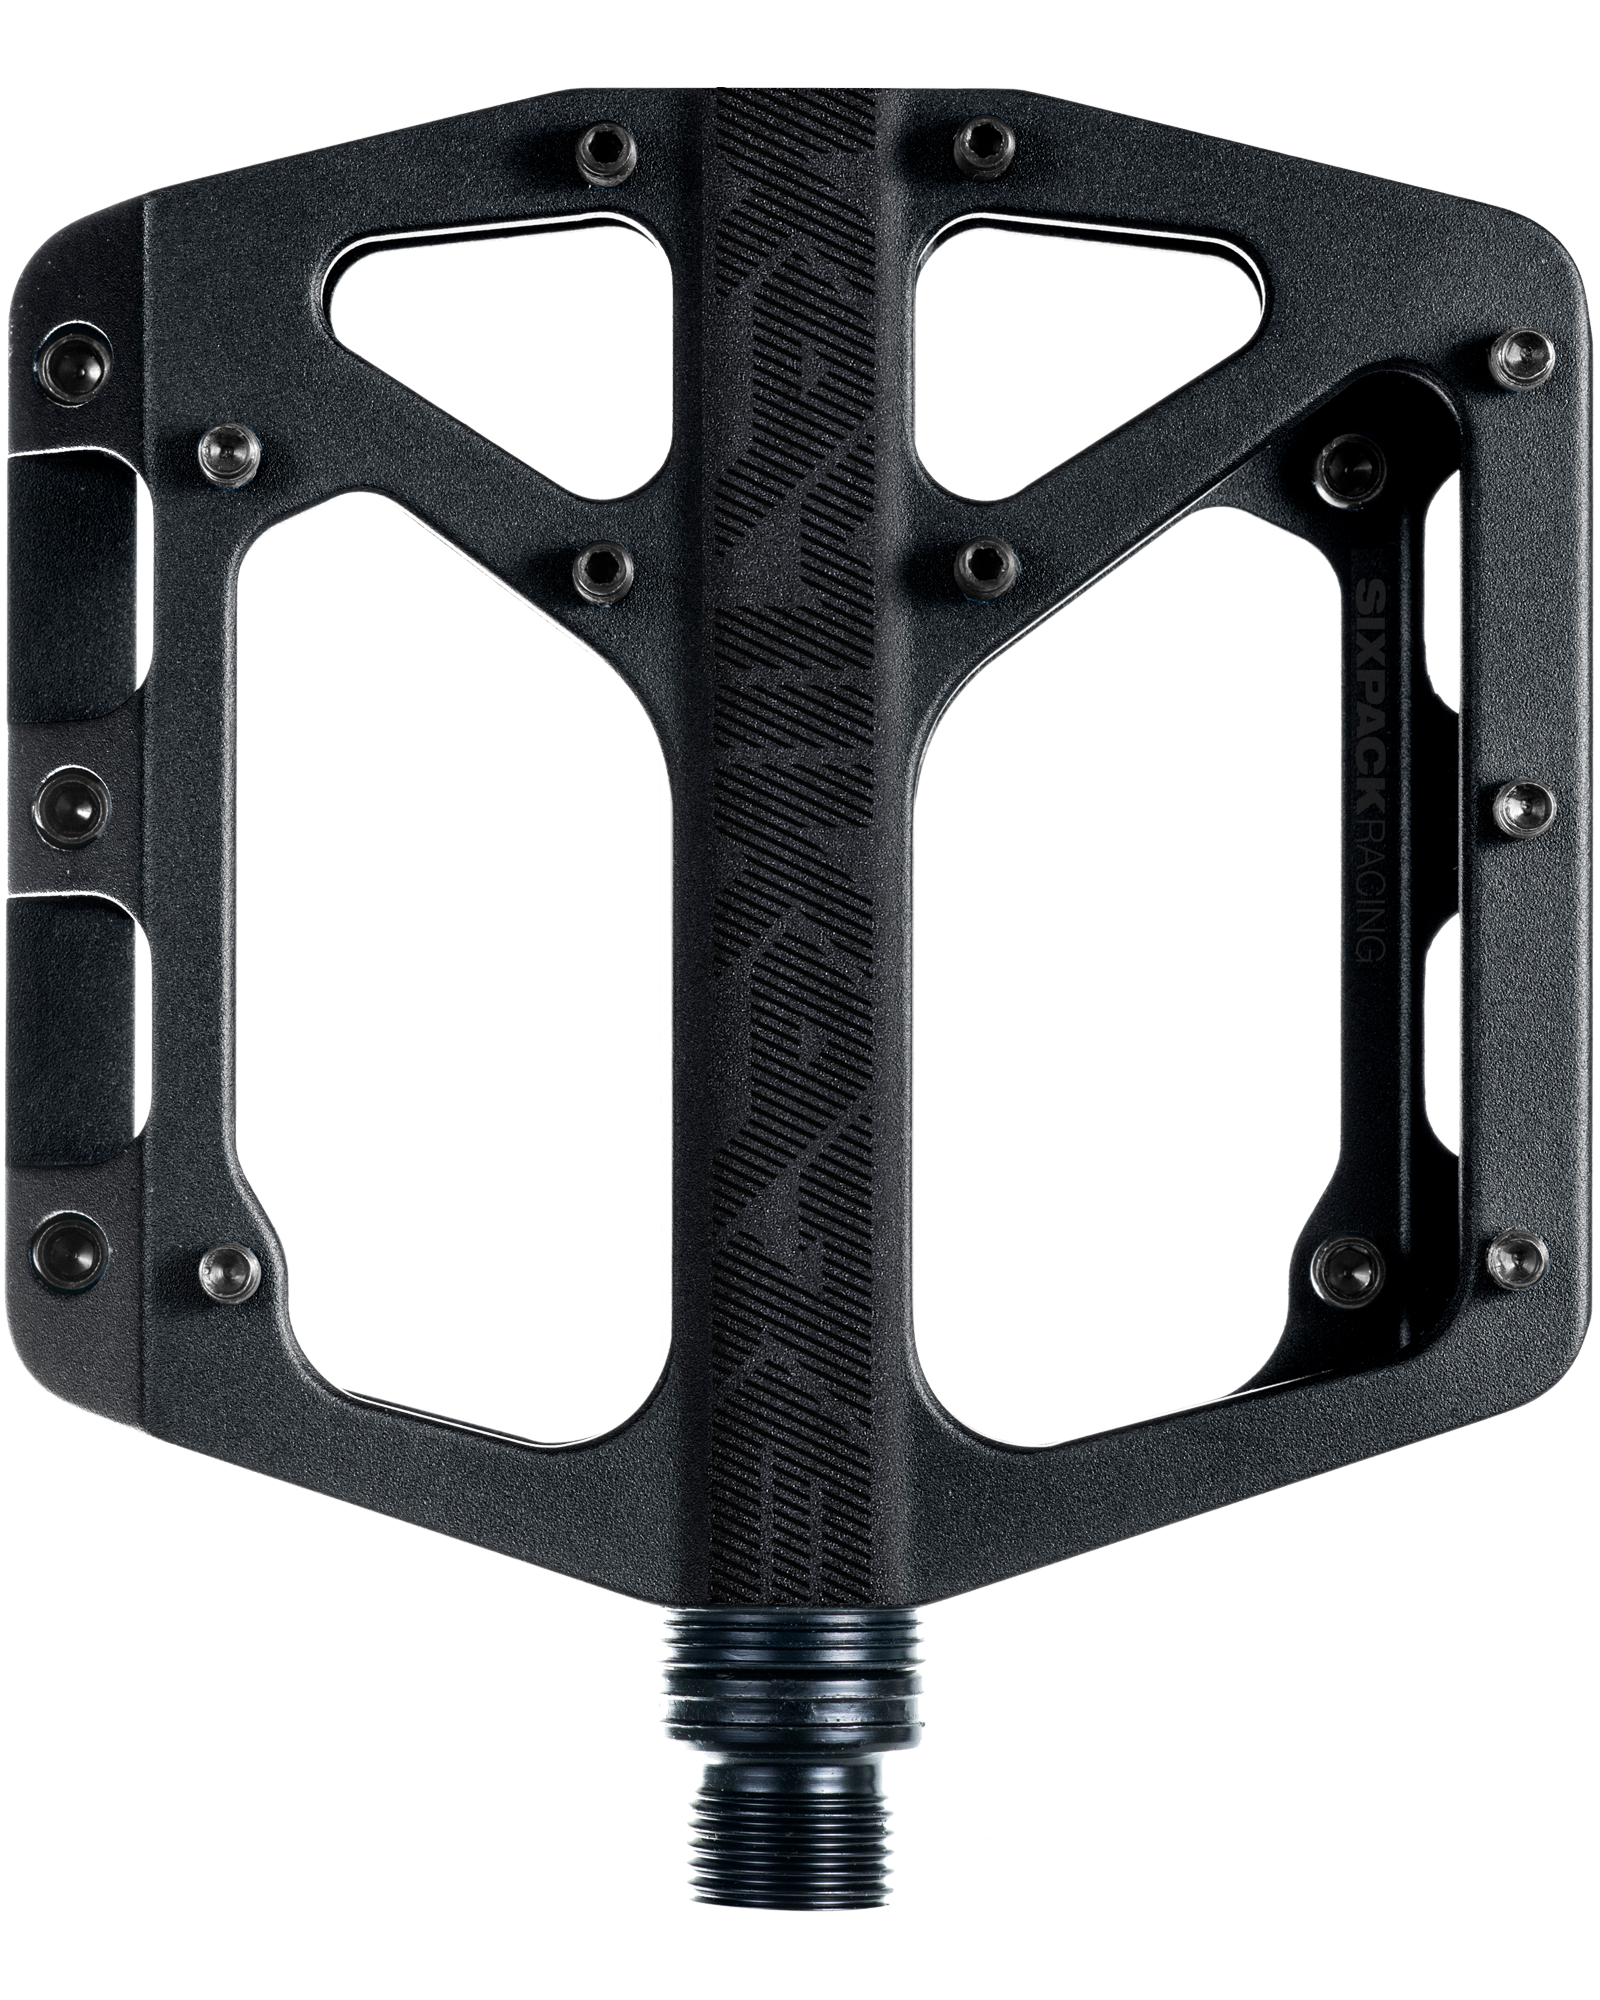 SIXPACK-RACING Kamikaze 2.0 Pedals | Pedals